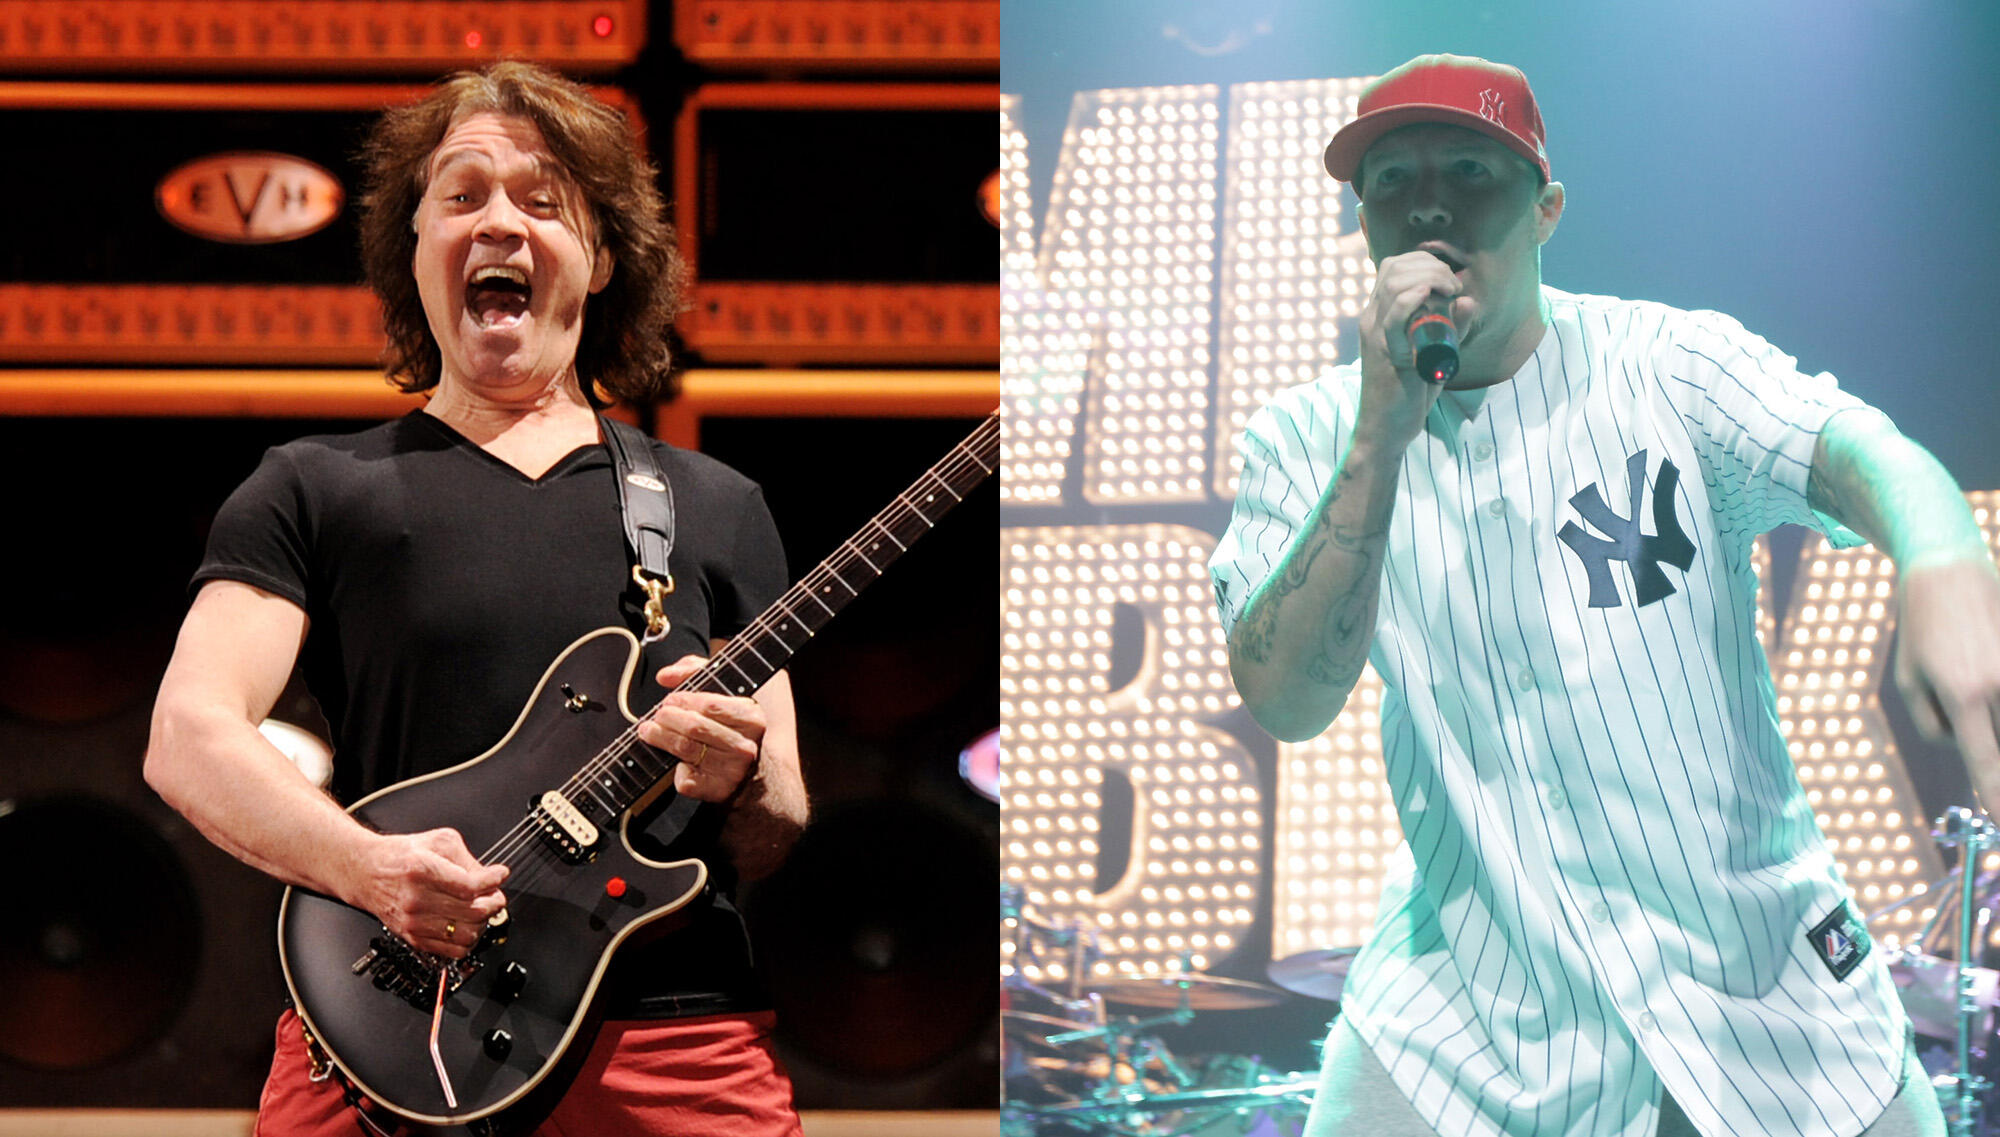 Eddie Van Halen Once Threatened Fred Durst With A Gun After A Jam Session